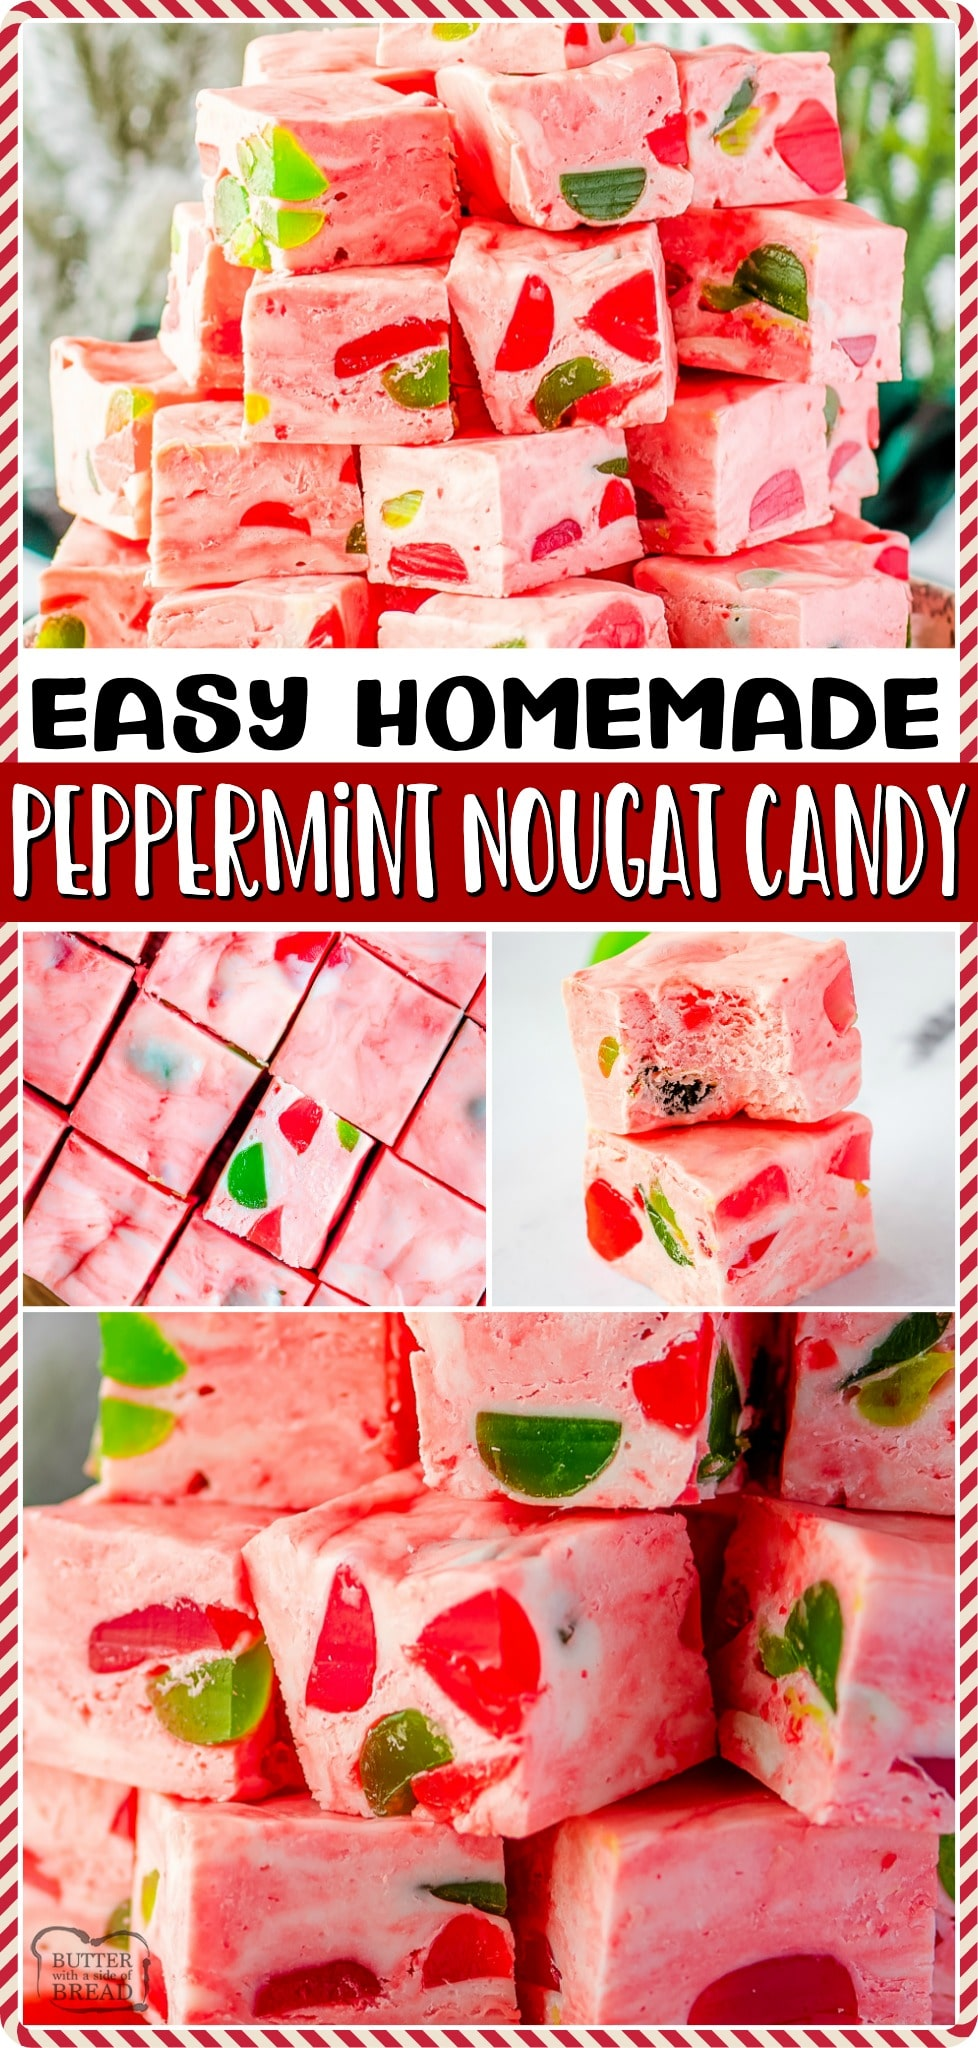 Homemade Peppermint Nougat Candy, made with 6 ingredients & is a perfectly festive holiday treat! This soft chewy candy with peppermint pieces & gumdrops is great for Christmas dessert trays!